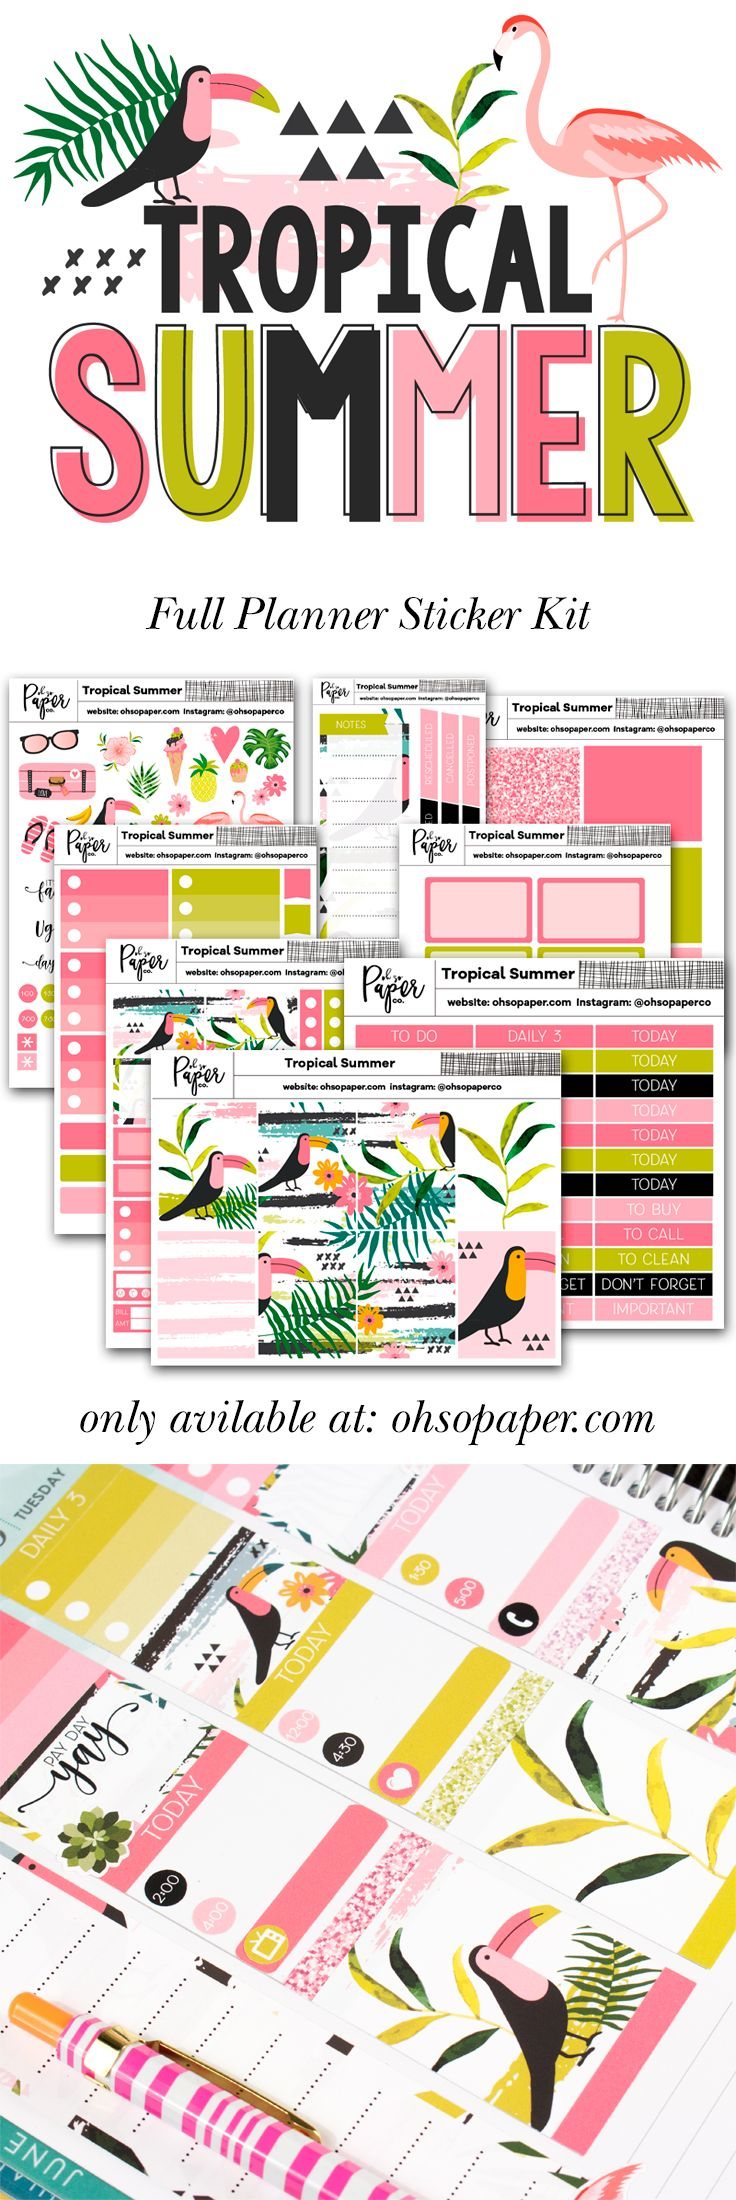 The Tropical Summer Full Planner Sticker Kit is the perfect way to bring in summer.   The kit is bright, fun and colorful and has plenty of stickers to decorate your spread in your Erin Condren Life Planner, Happy Planner, Recollections planner or any of your favorite planners.